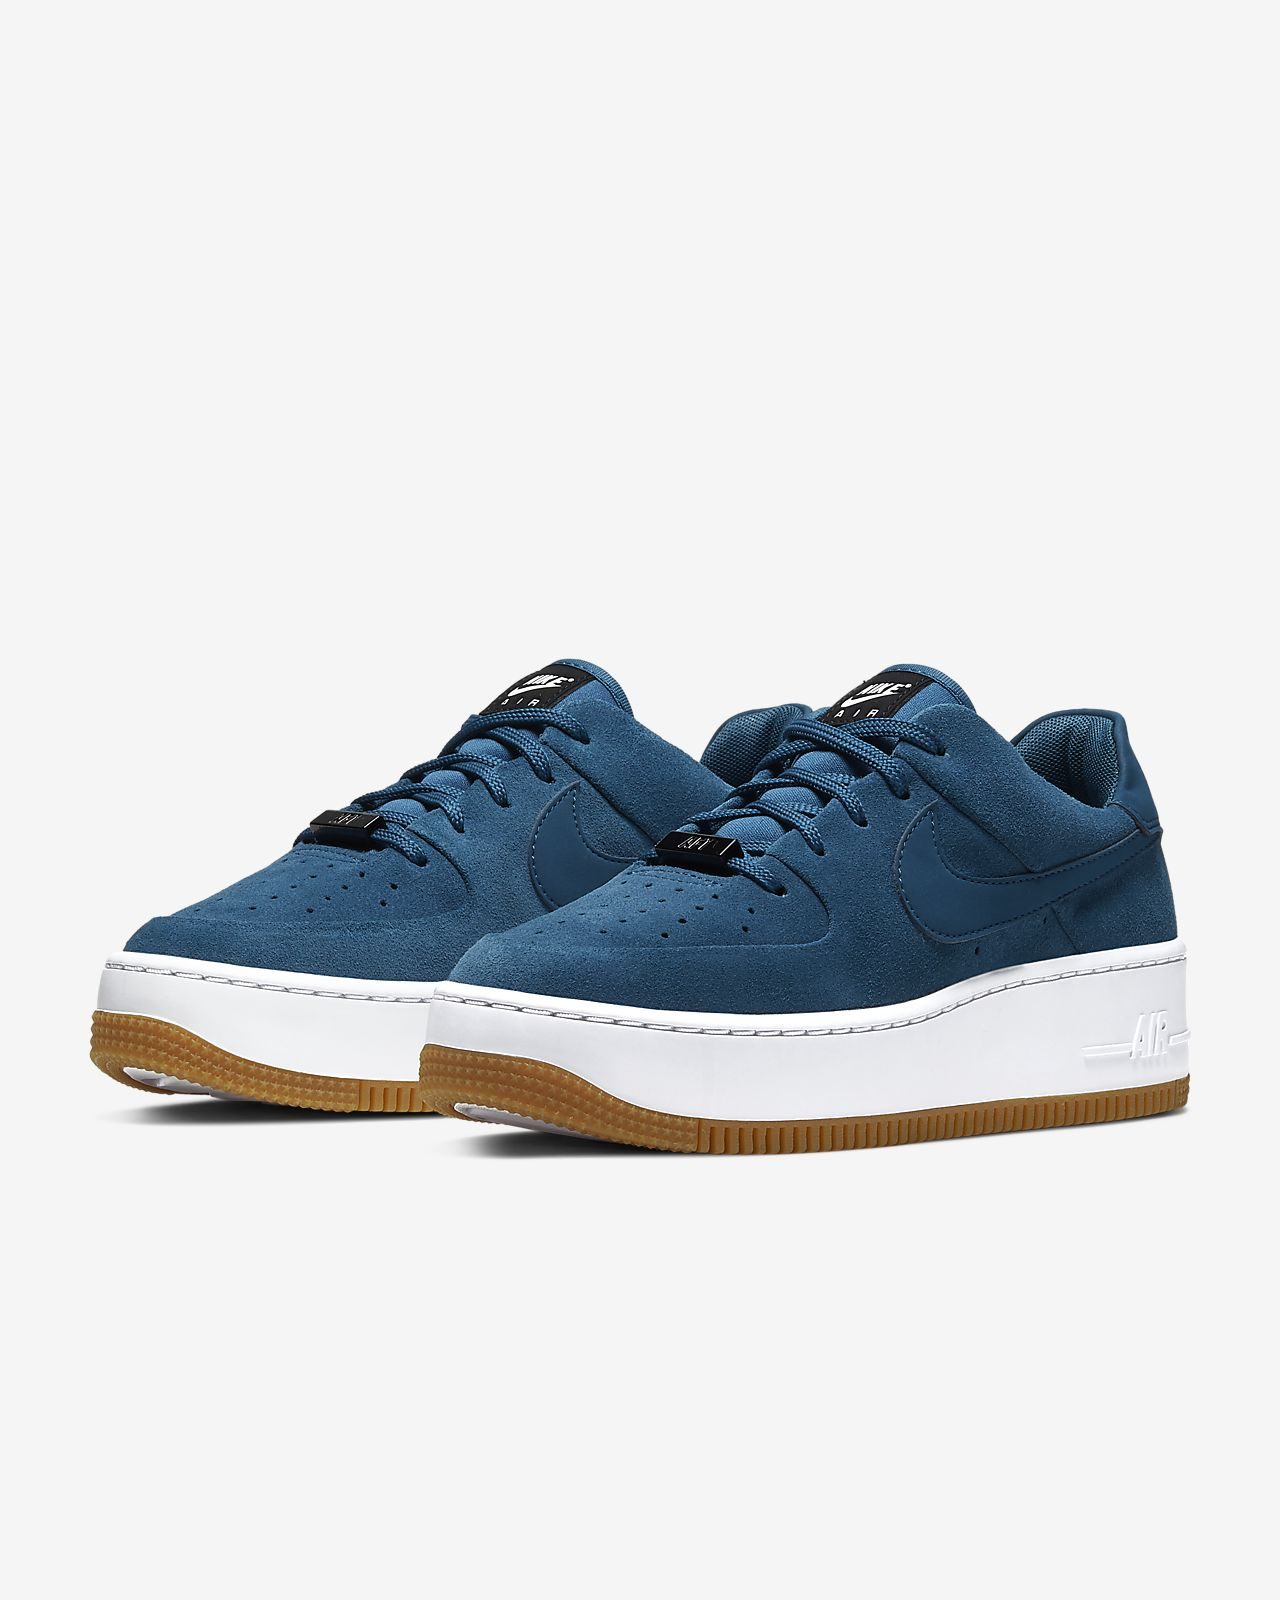 classic style the best attitude detailing Chaussure Nike Air Force 1 Sage Low pour Femme